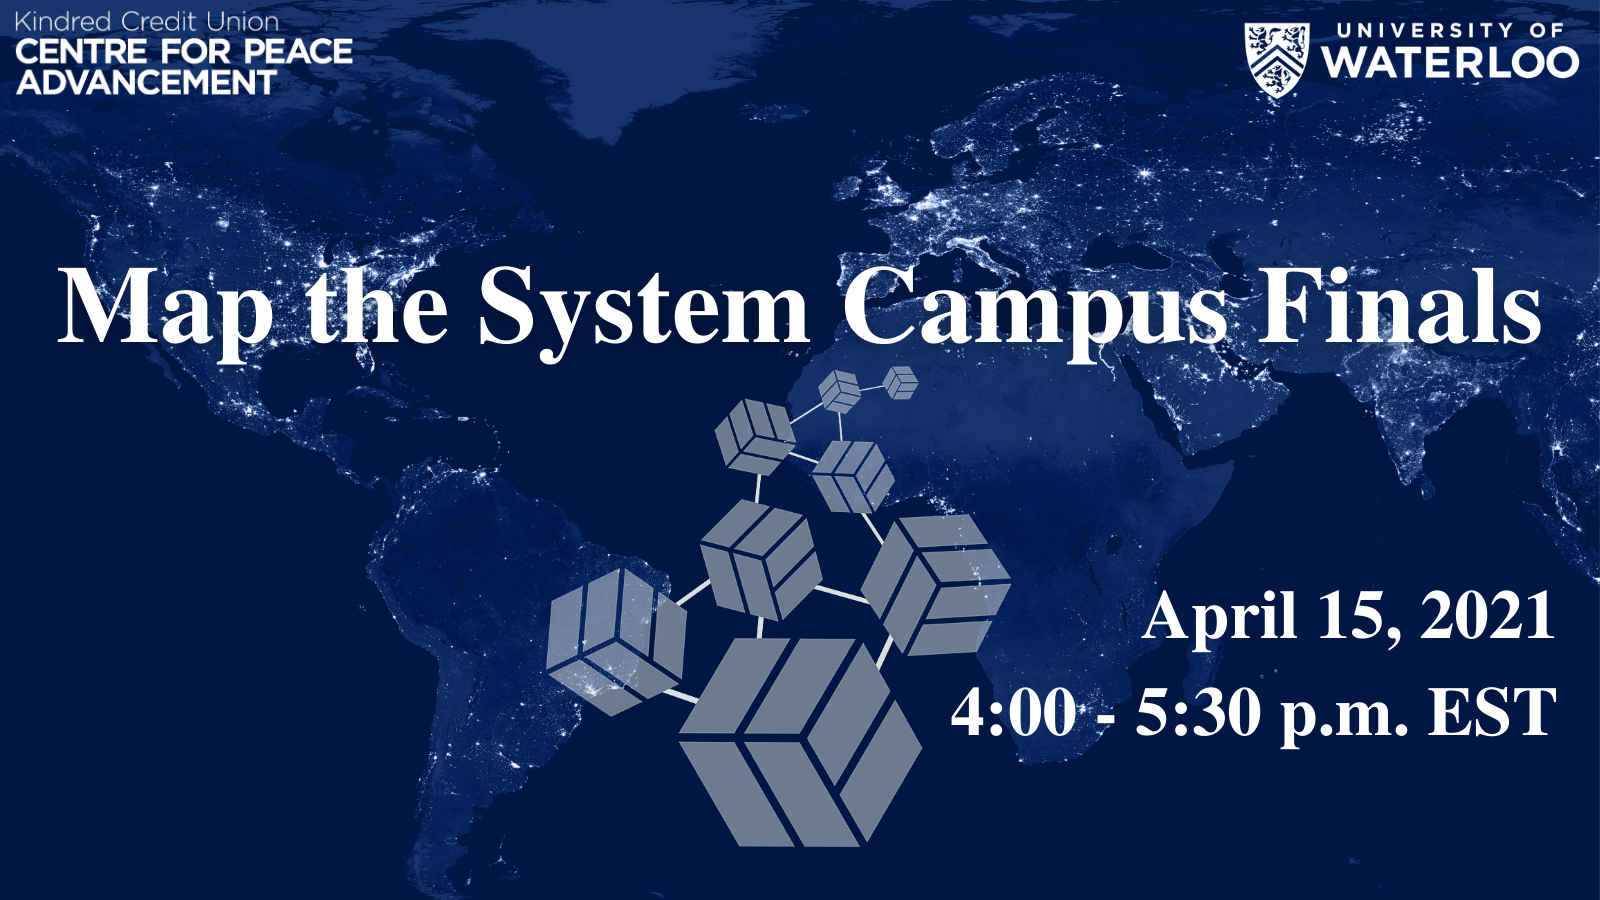 Poster for Map the System Campus Finals 2021 from 4:00 to 5:30 pm on April 15th